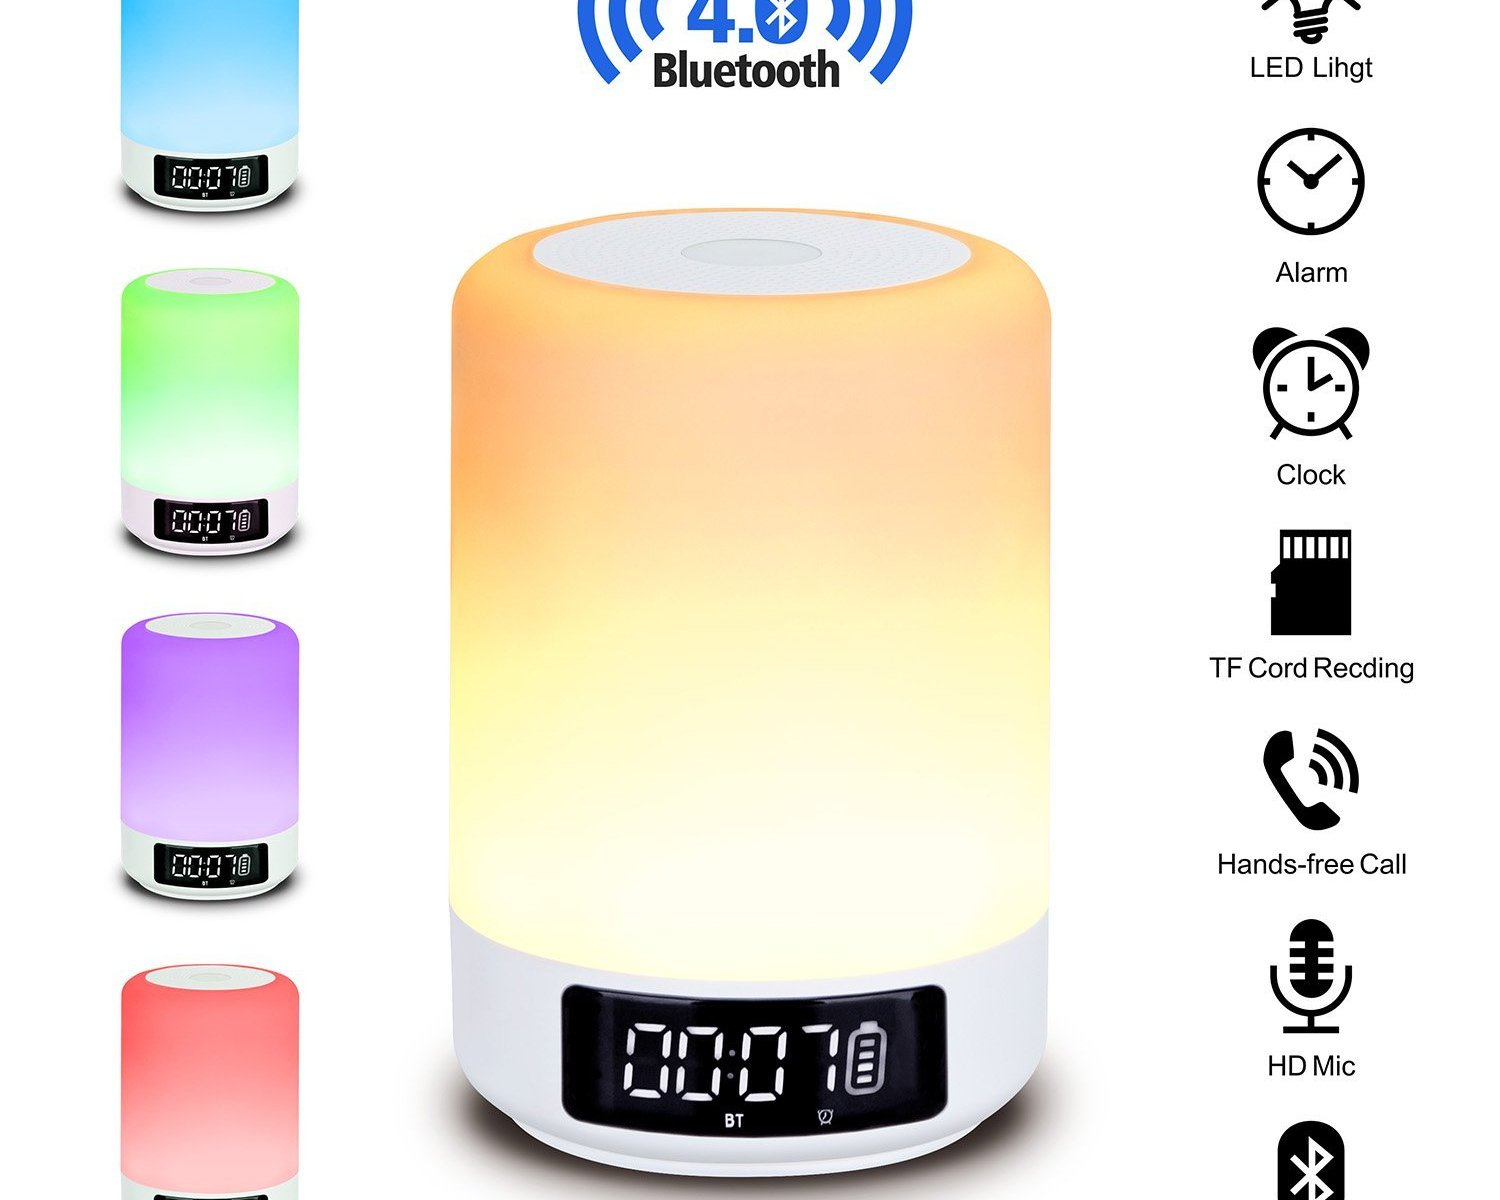 beawelle bluetooth lautsprecher farbwechsel lampe nachttischlampe touch control lampe rgb led. Black Bedroom Furniture Sets. Home Design Ideas